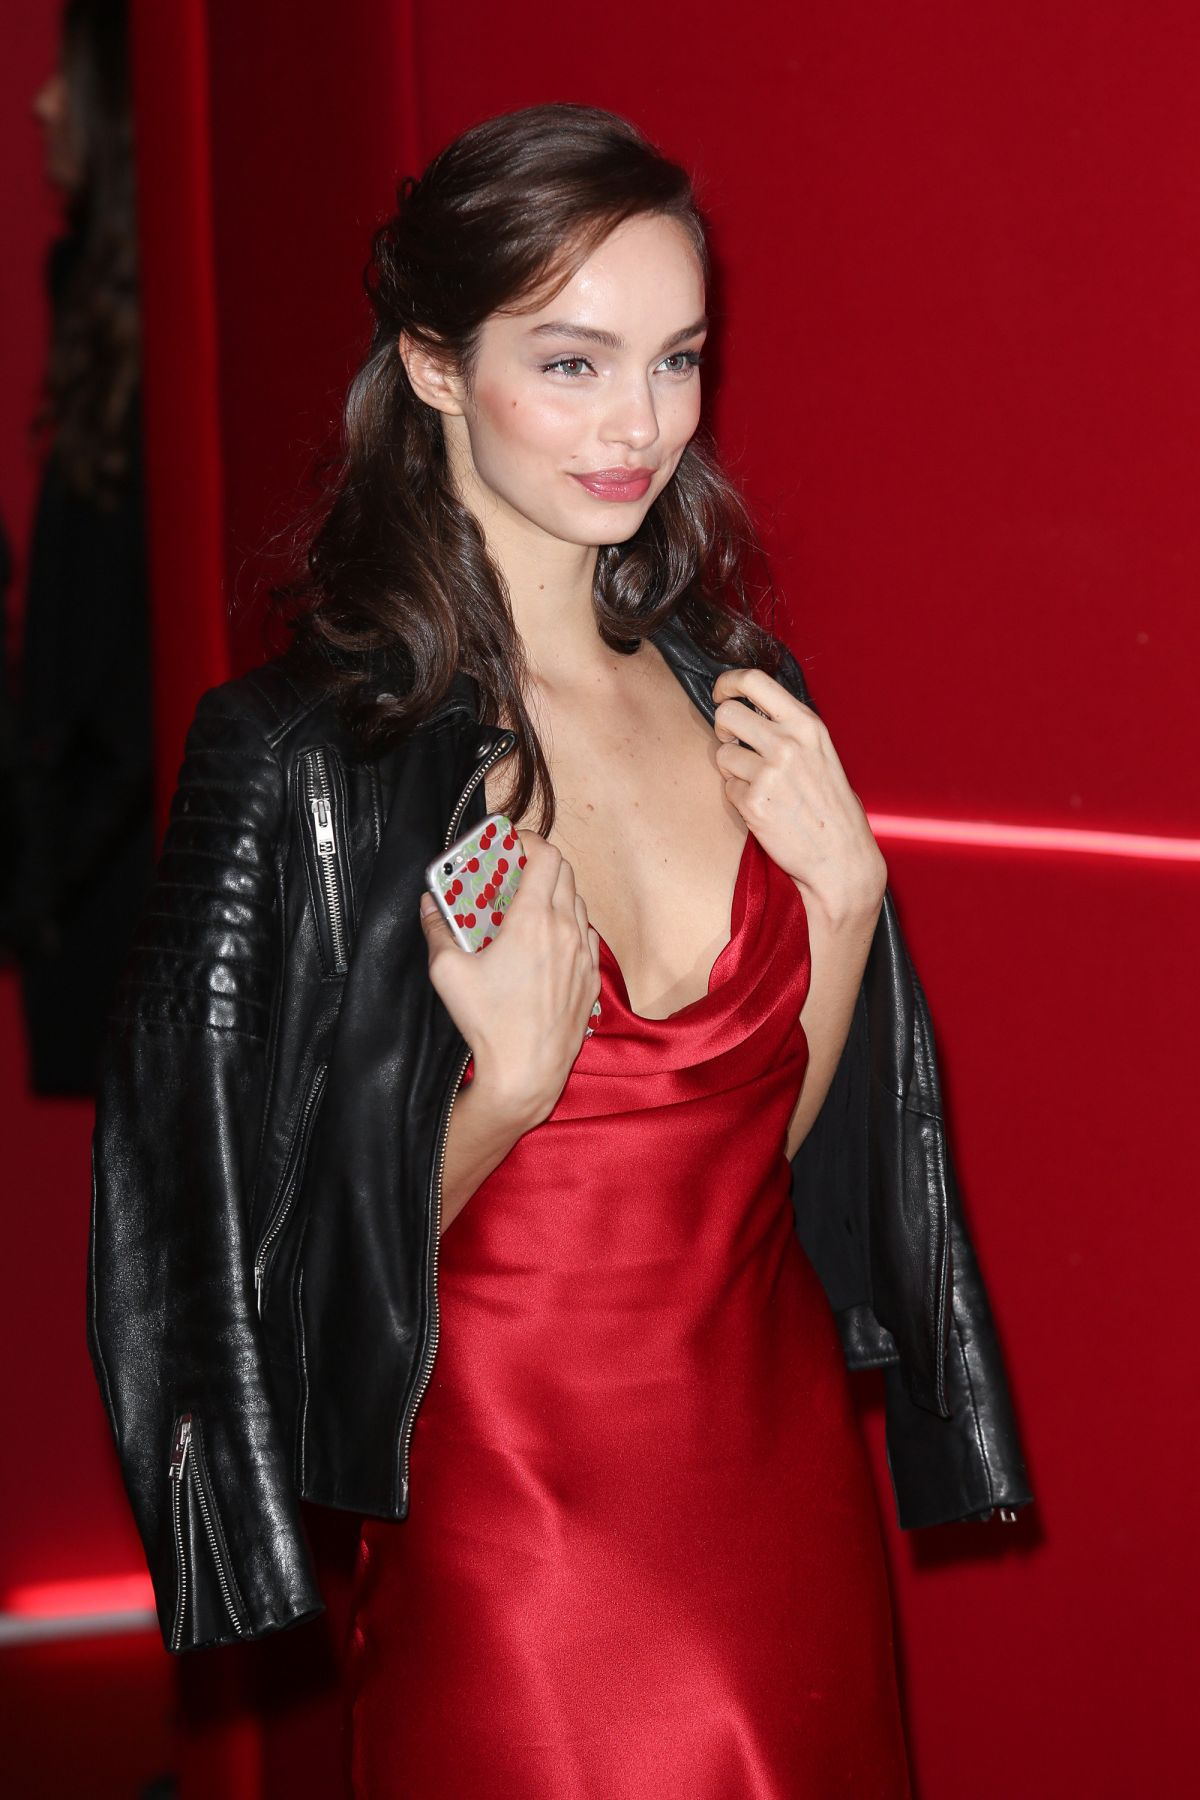 LUMA GROTHE Leaves L